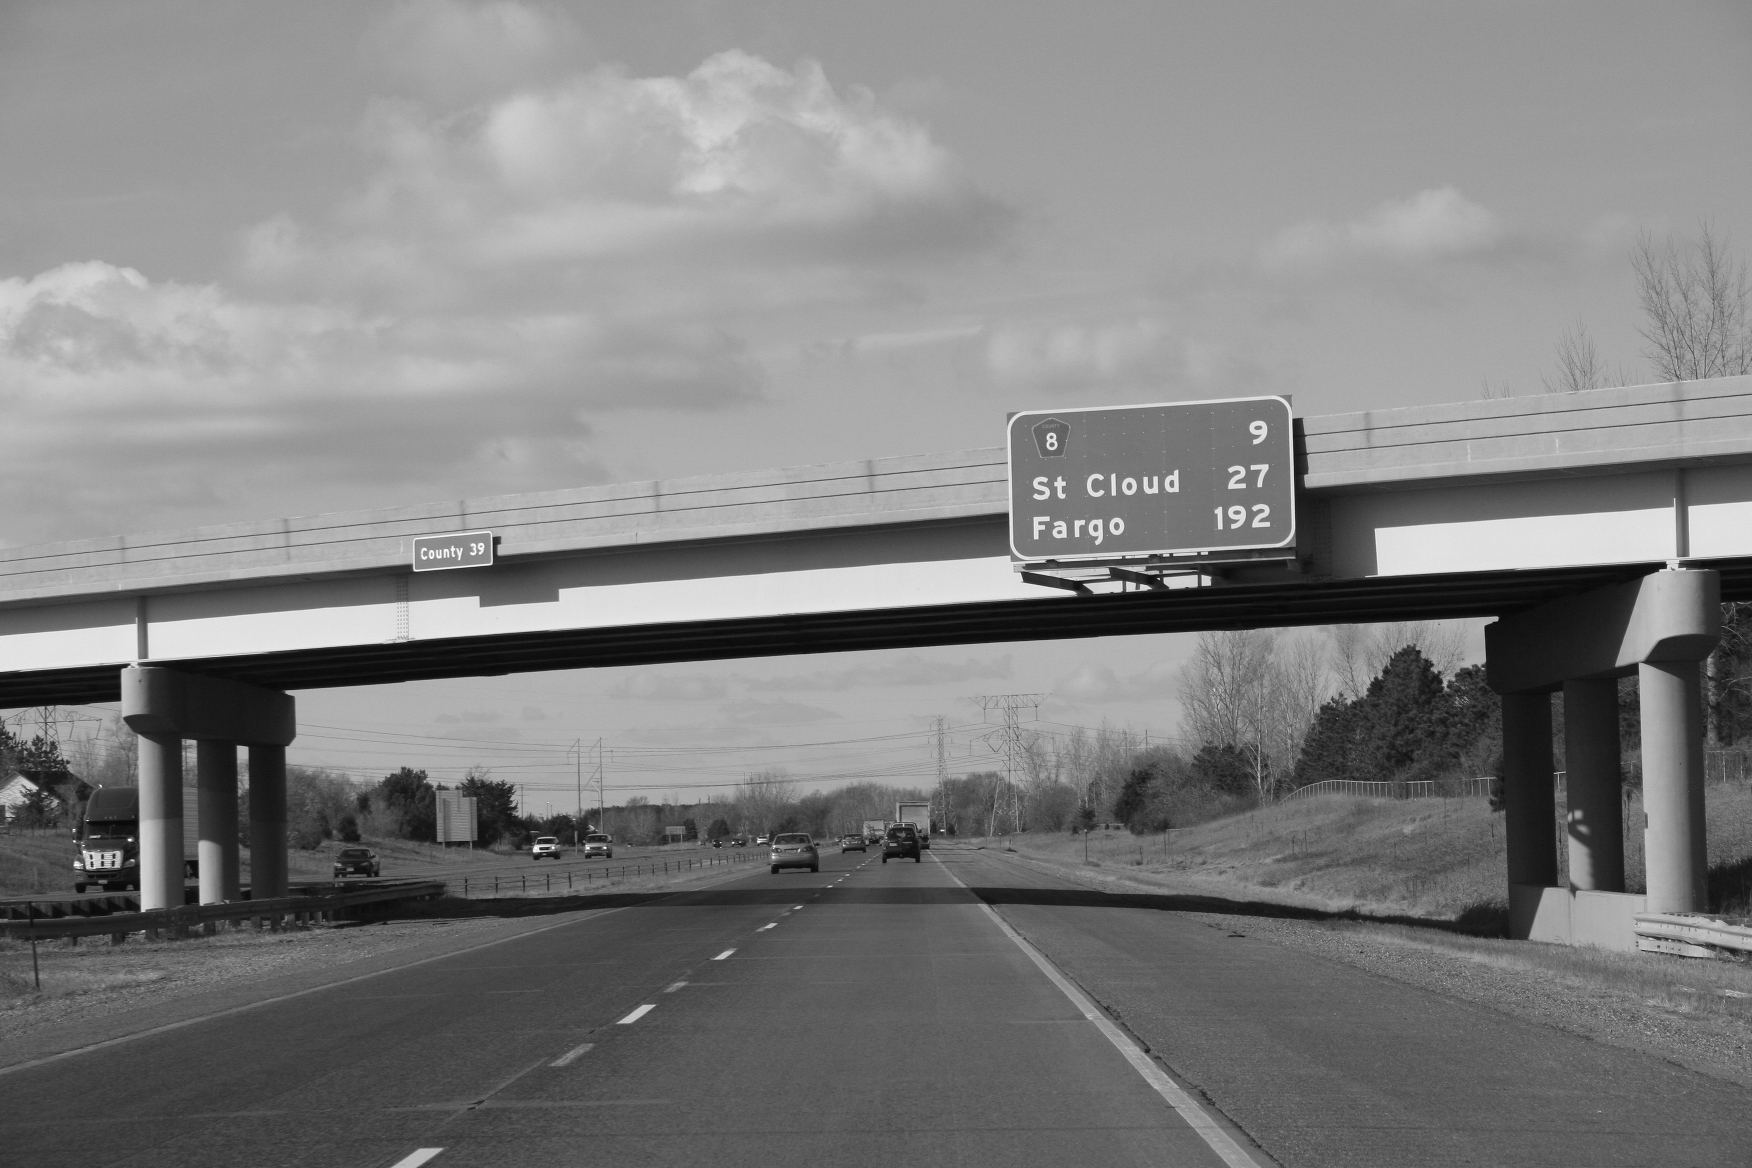 Traveling Interstate 94 on our way to Fargo with hours to go. File photo.